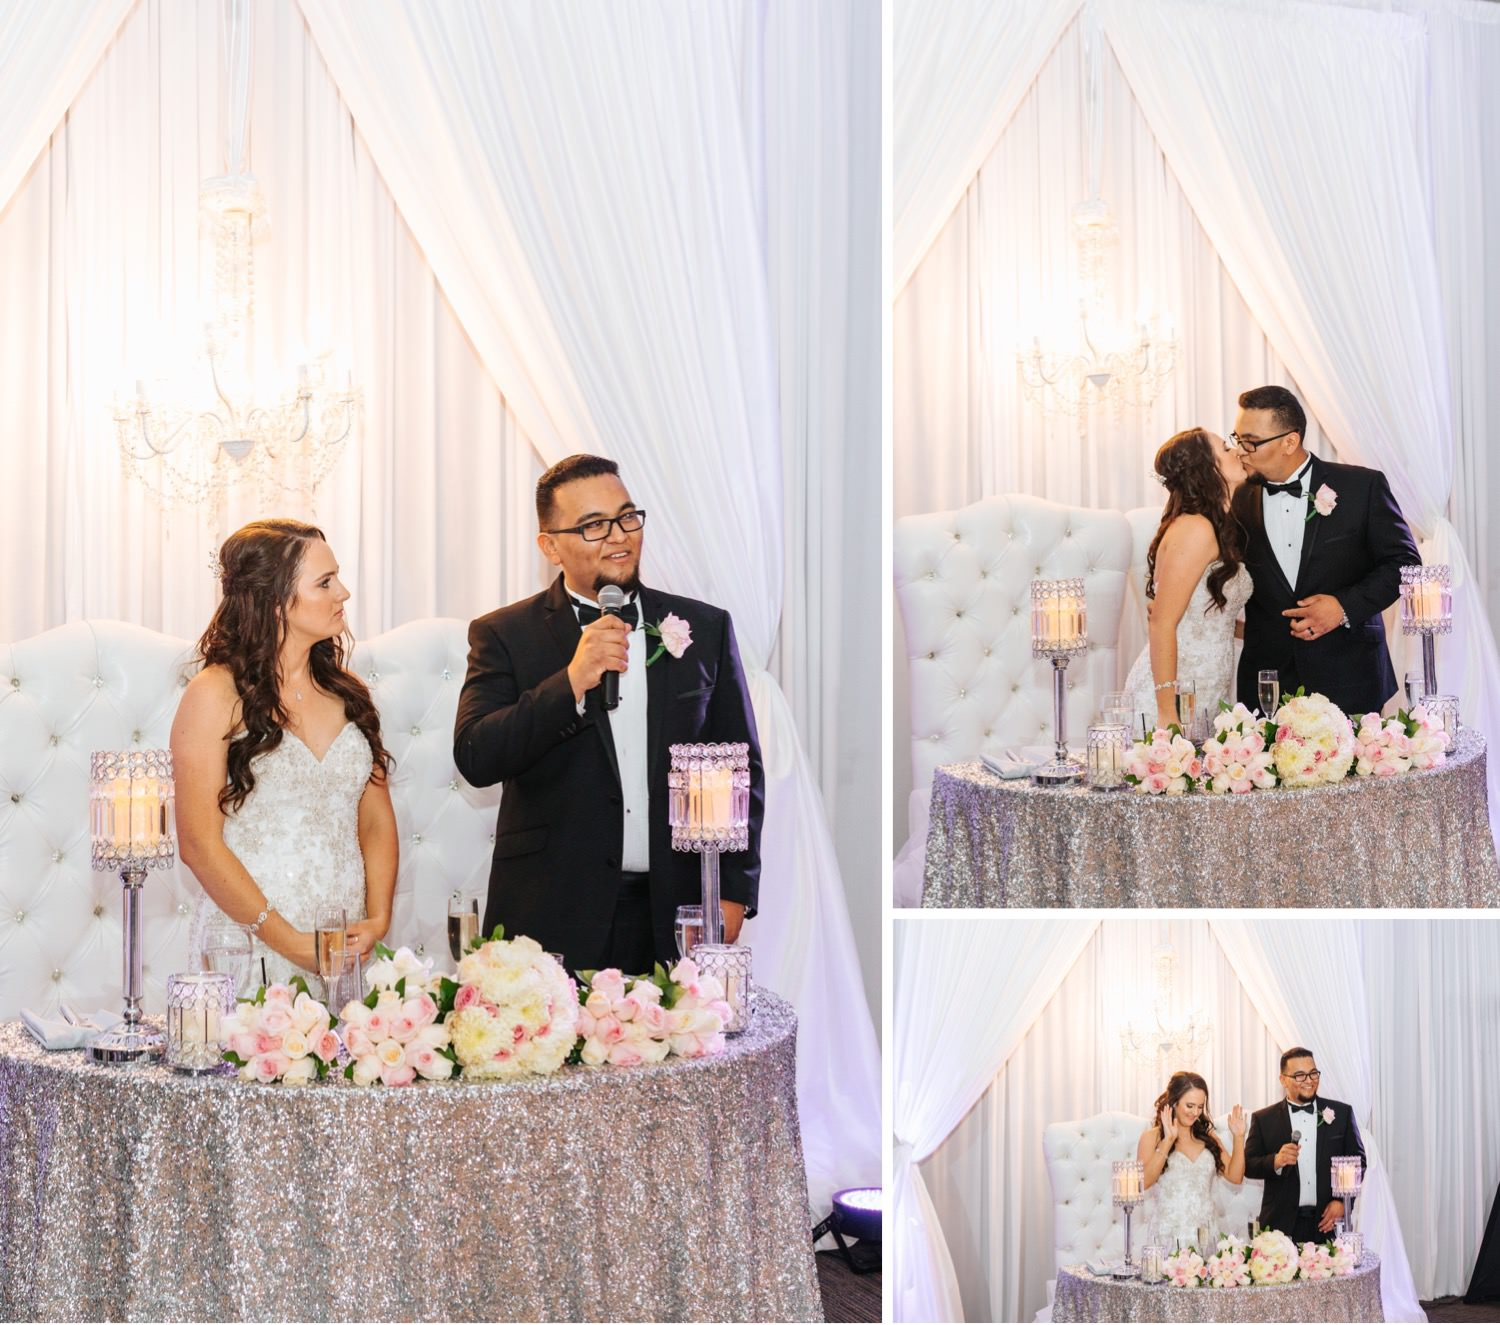 Thank you Speech by Bride and Groom - Wedding Reception at Chino Hills Community Center - Chino Hills Wedding Photographer - https://brittneyhannonphotography.com